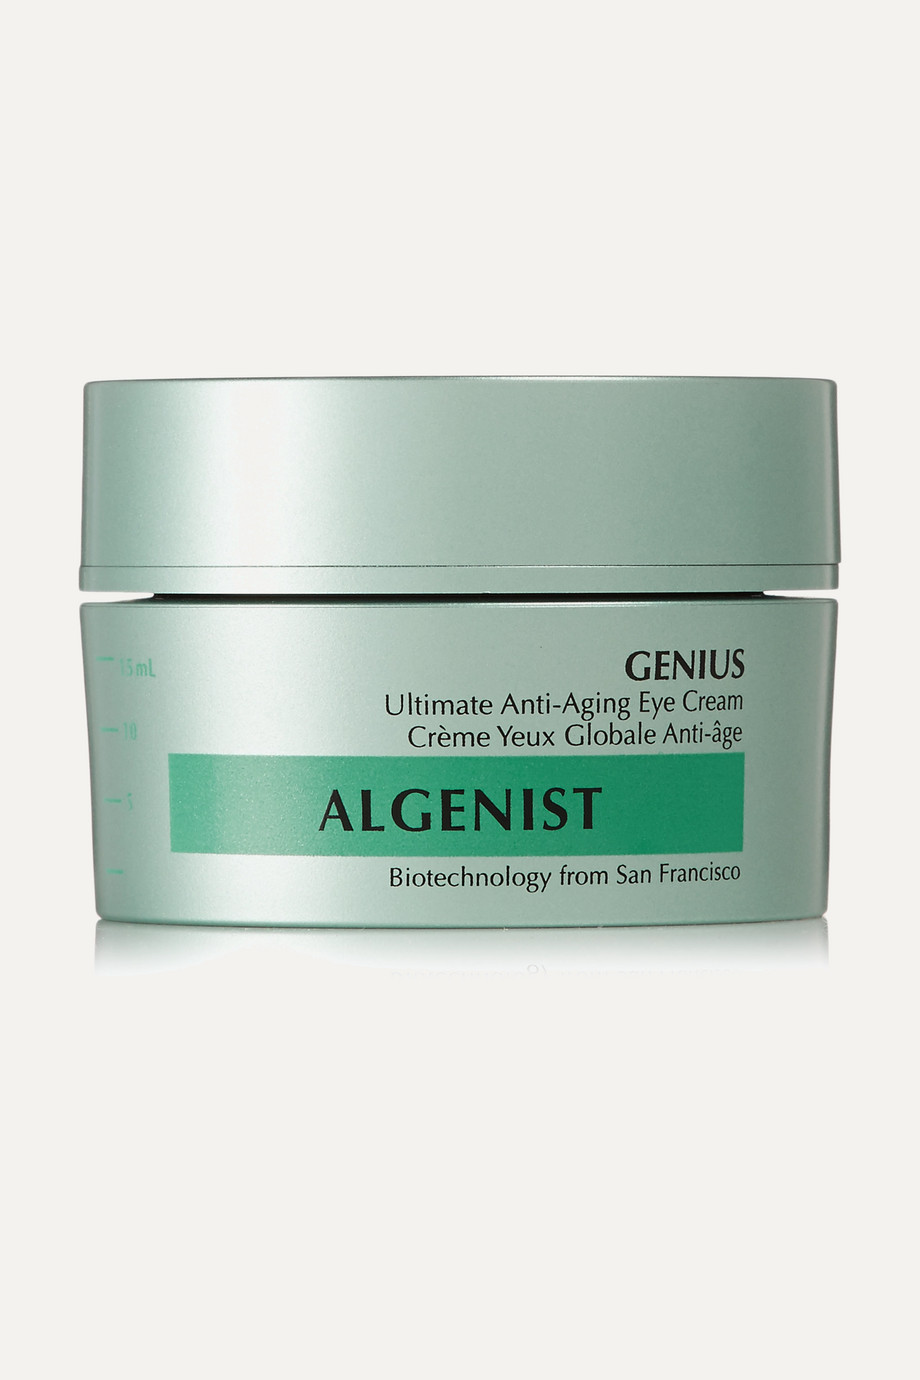 ALGENIST GENIUS Ultimate Anti-Aging Eye Cream, 15ml